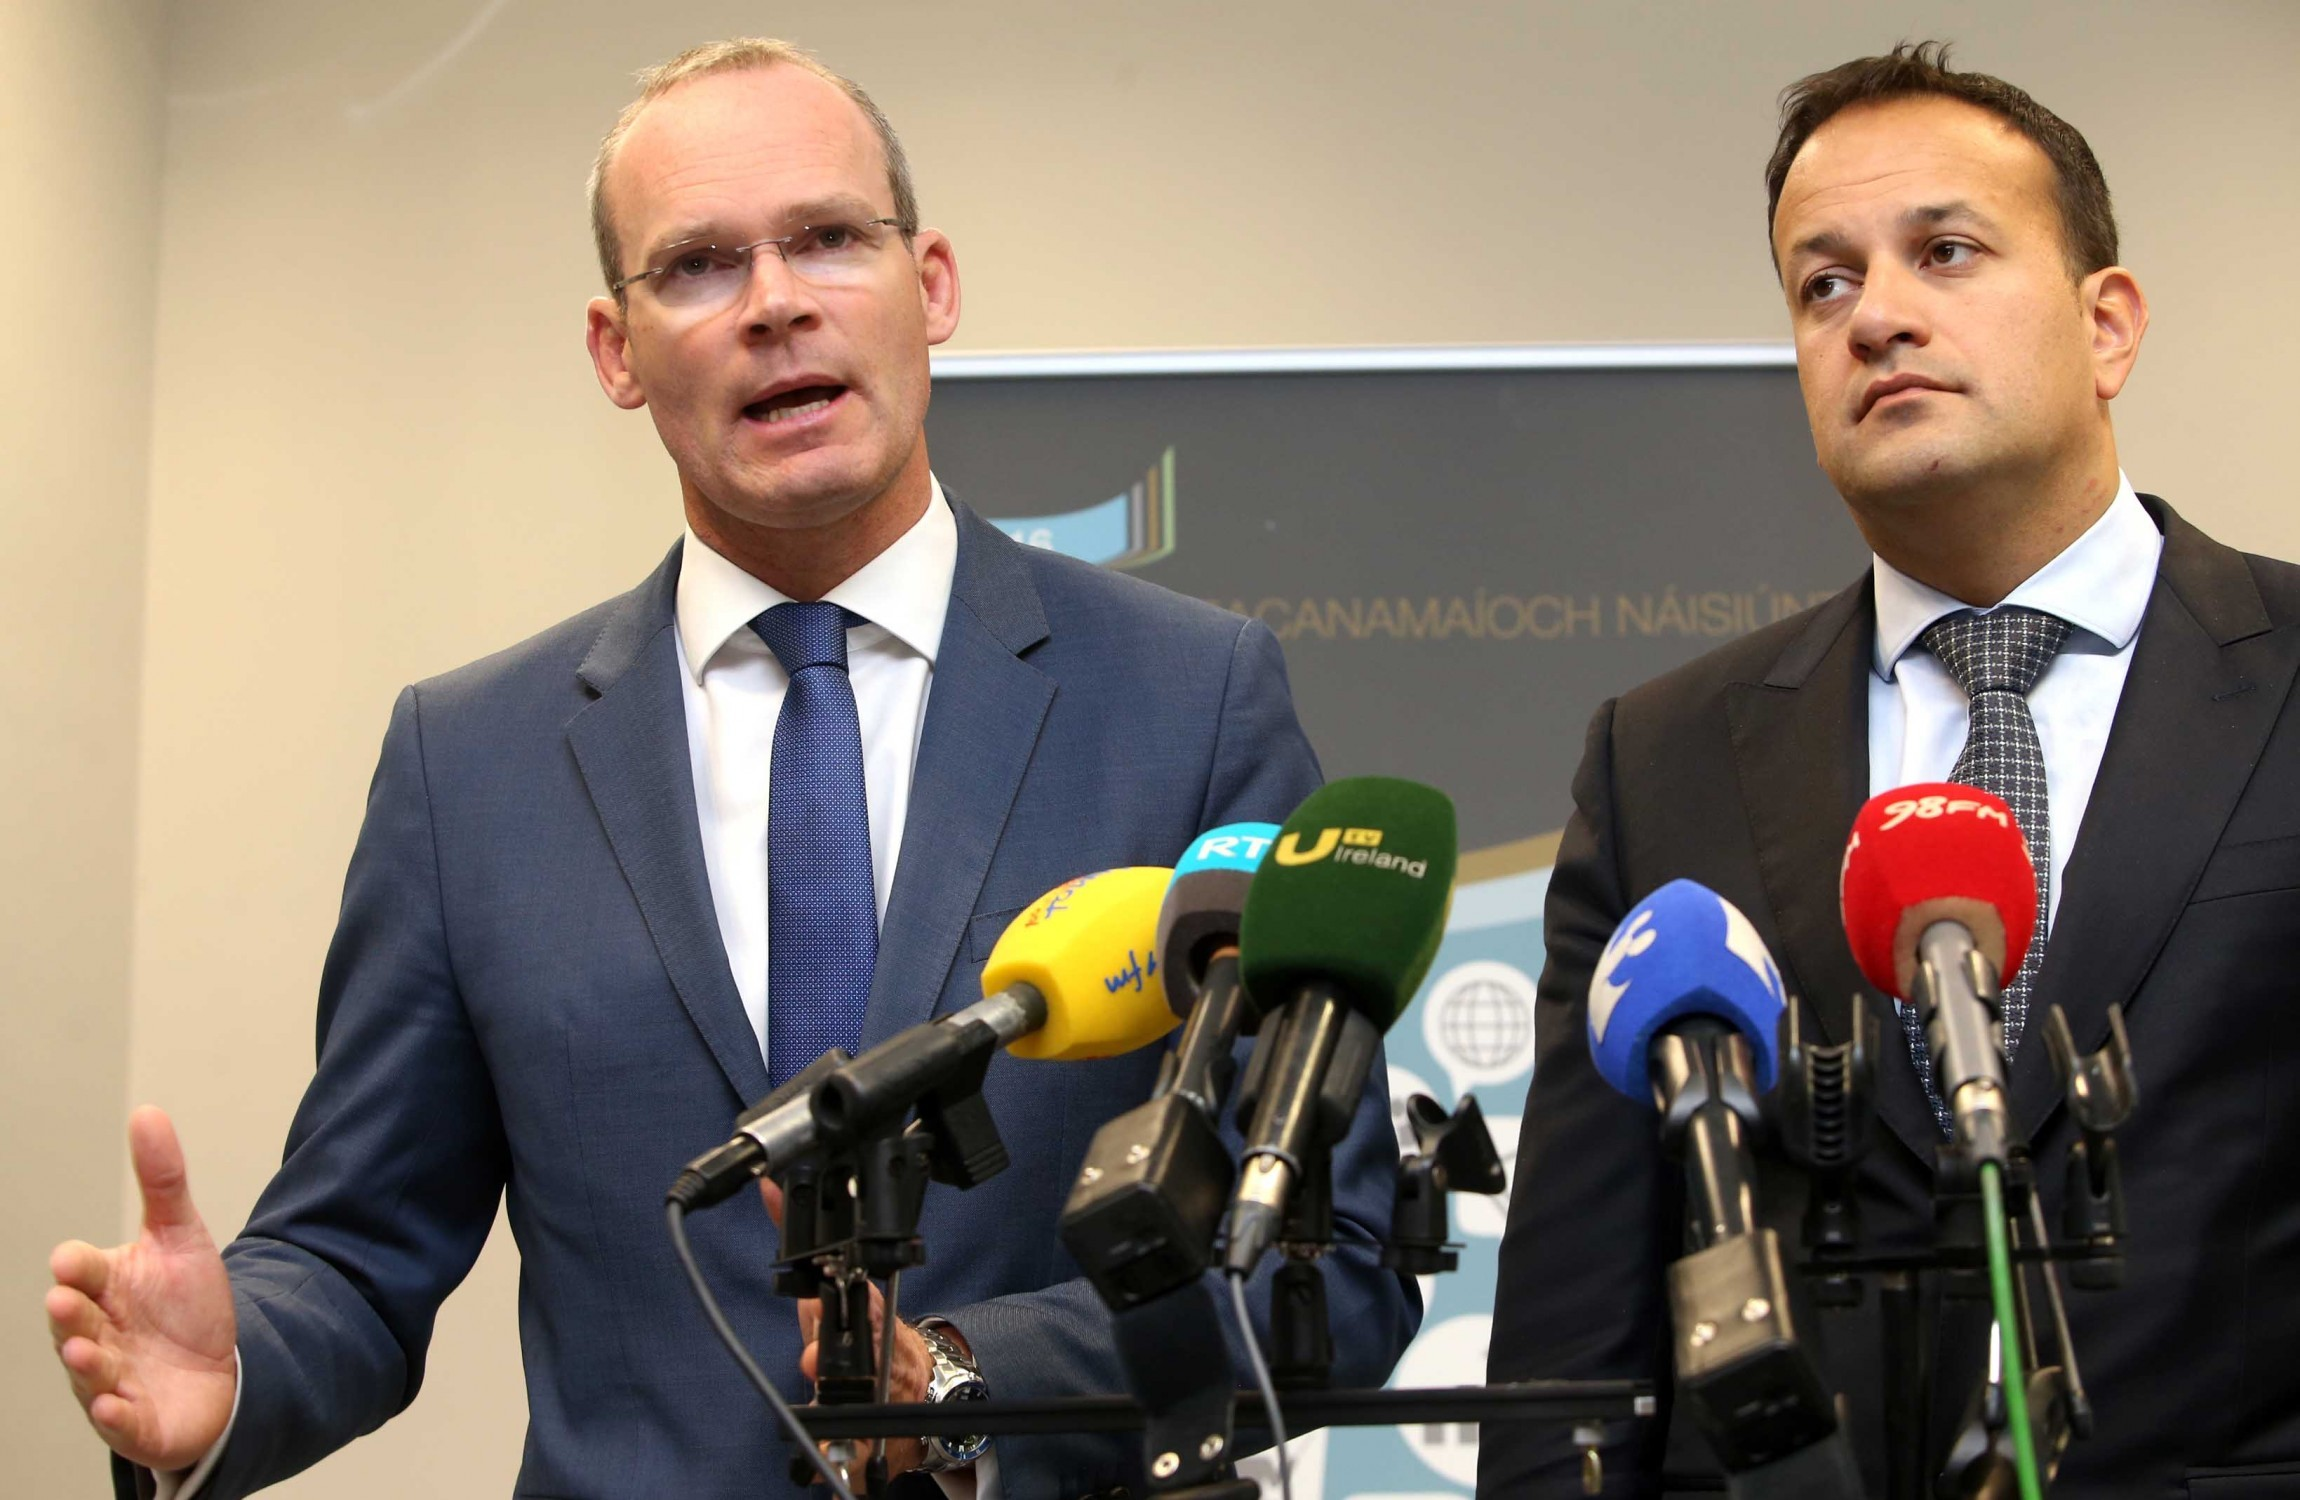 Arlene Foster congratulates Varadkar who will be first gay Irish premier